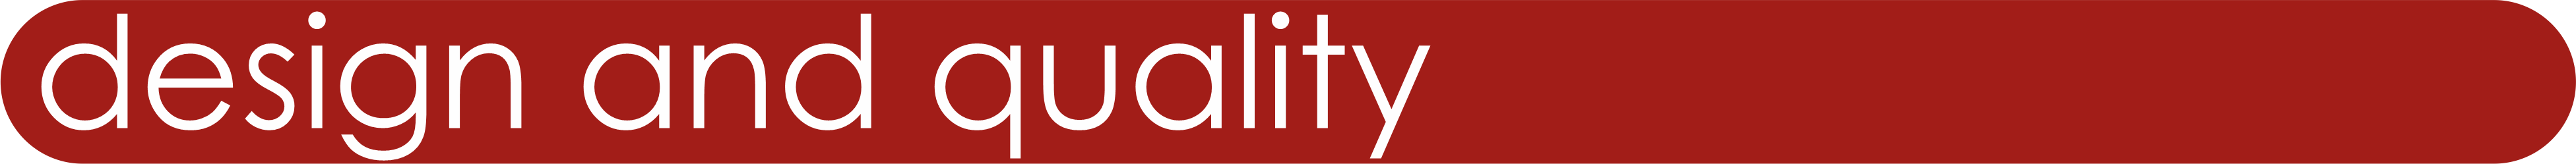 Main-design and qality